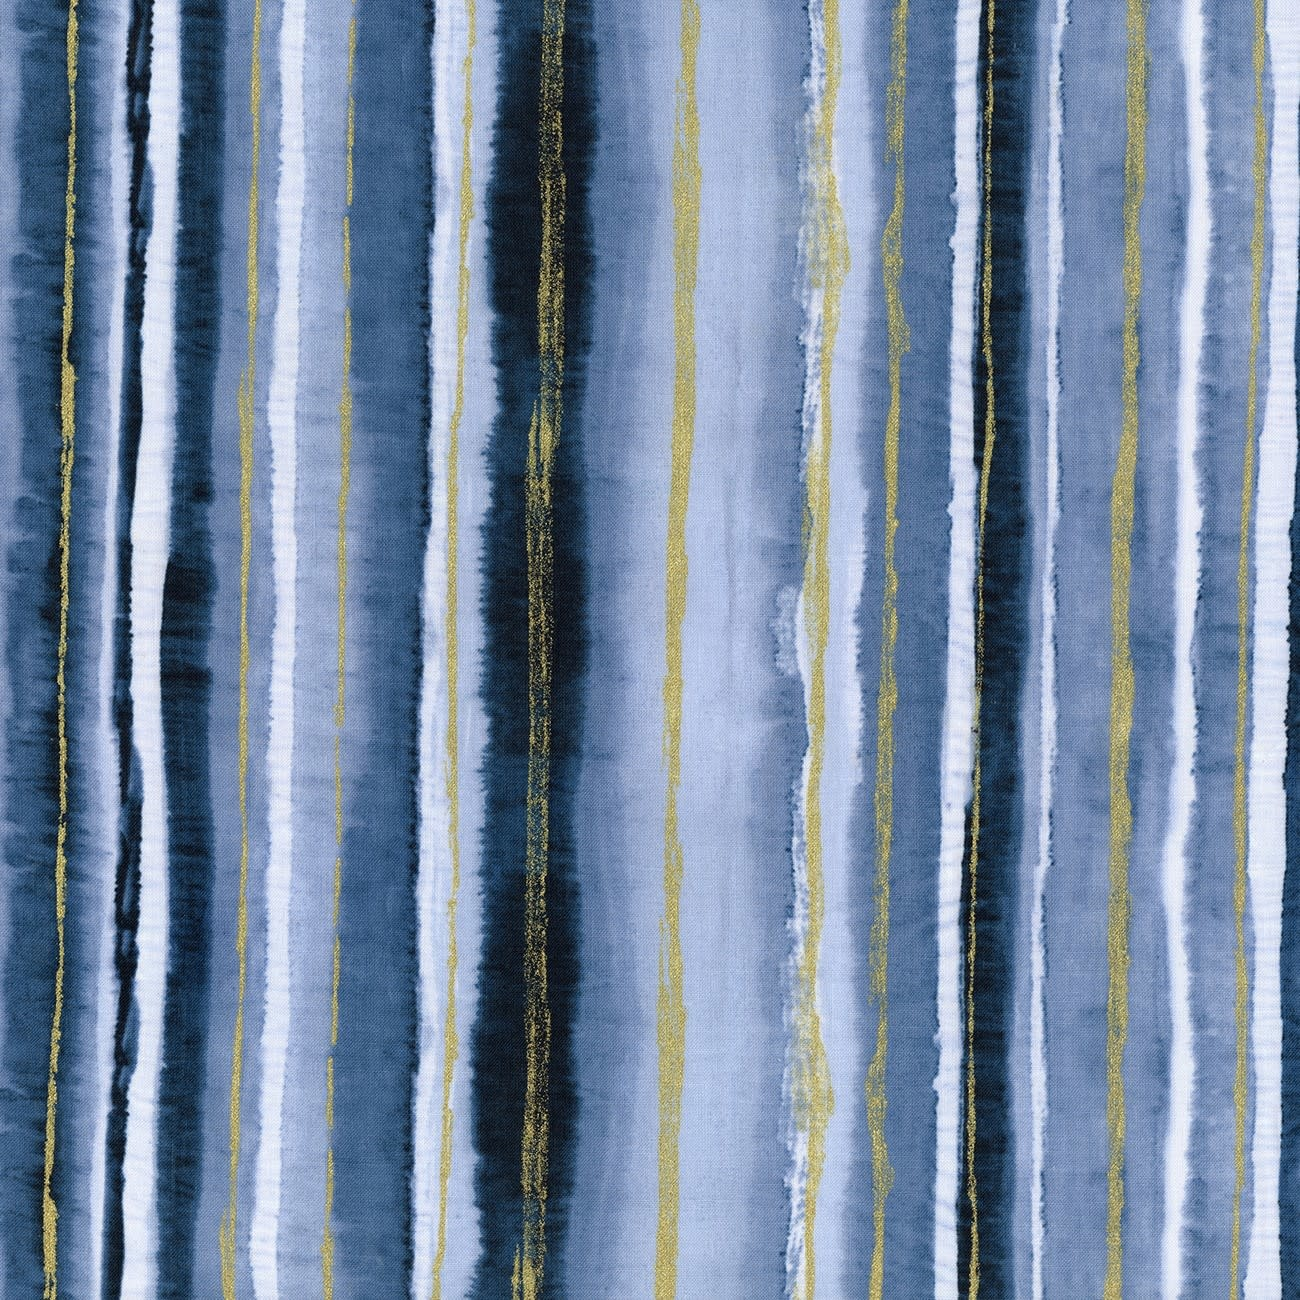 TIMELESS TREASURES Gilded City, Watercolour Stripe, Blue (8160-BLU) $0.20 per cm or $20/m